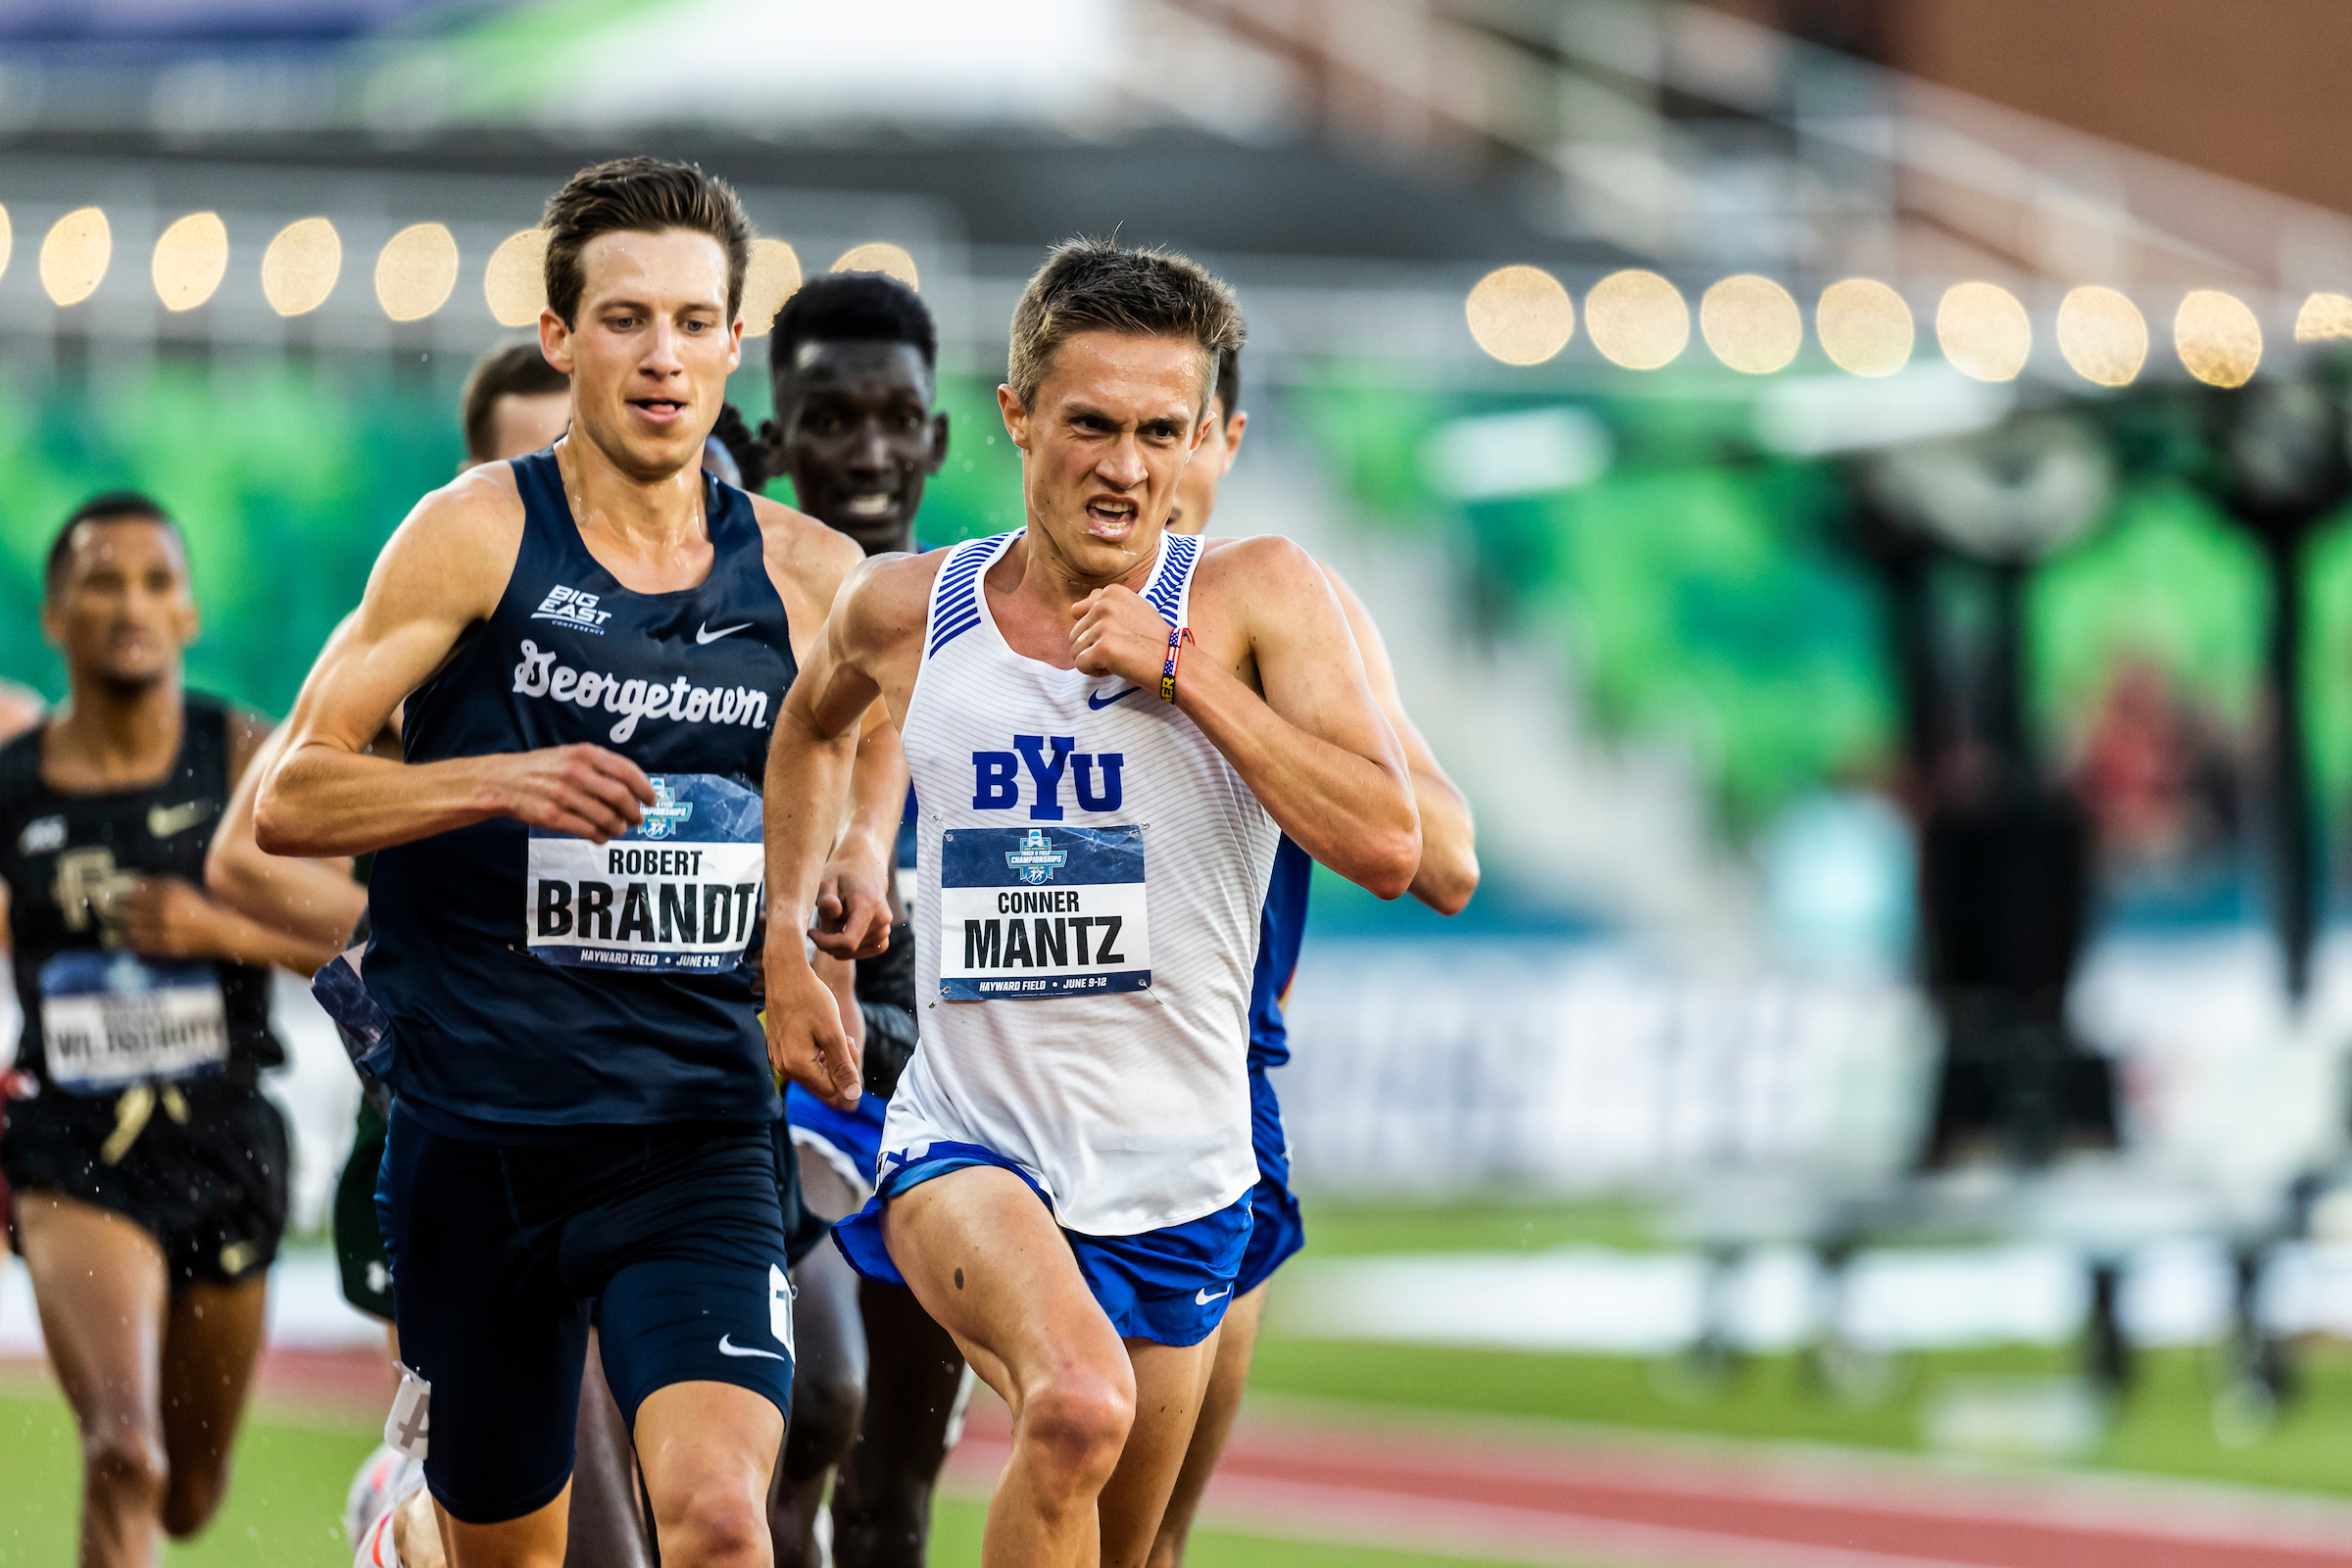 BYU's Conner Mantz took fifth in the U.S. Olympic Track and Field Trials.